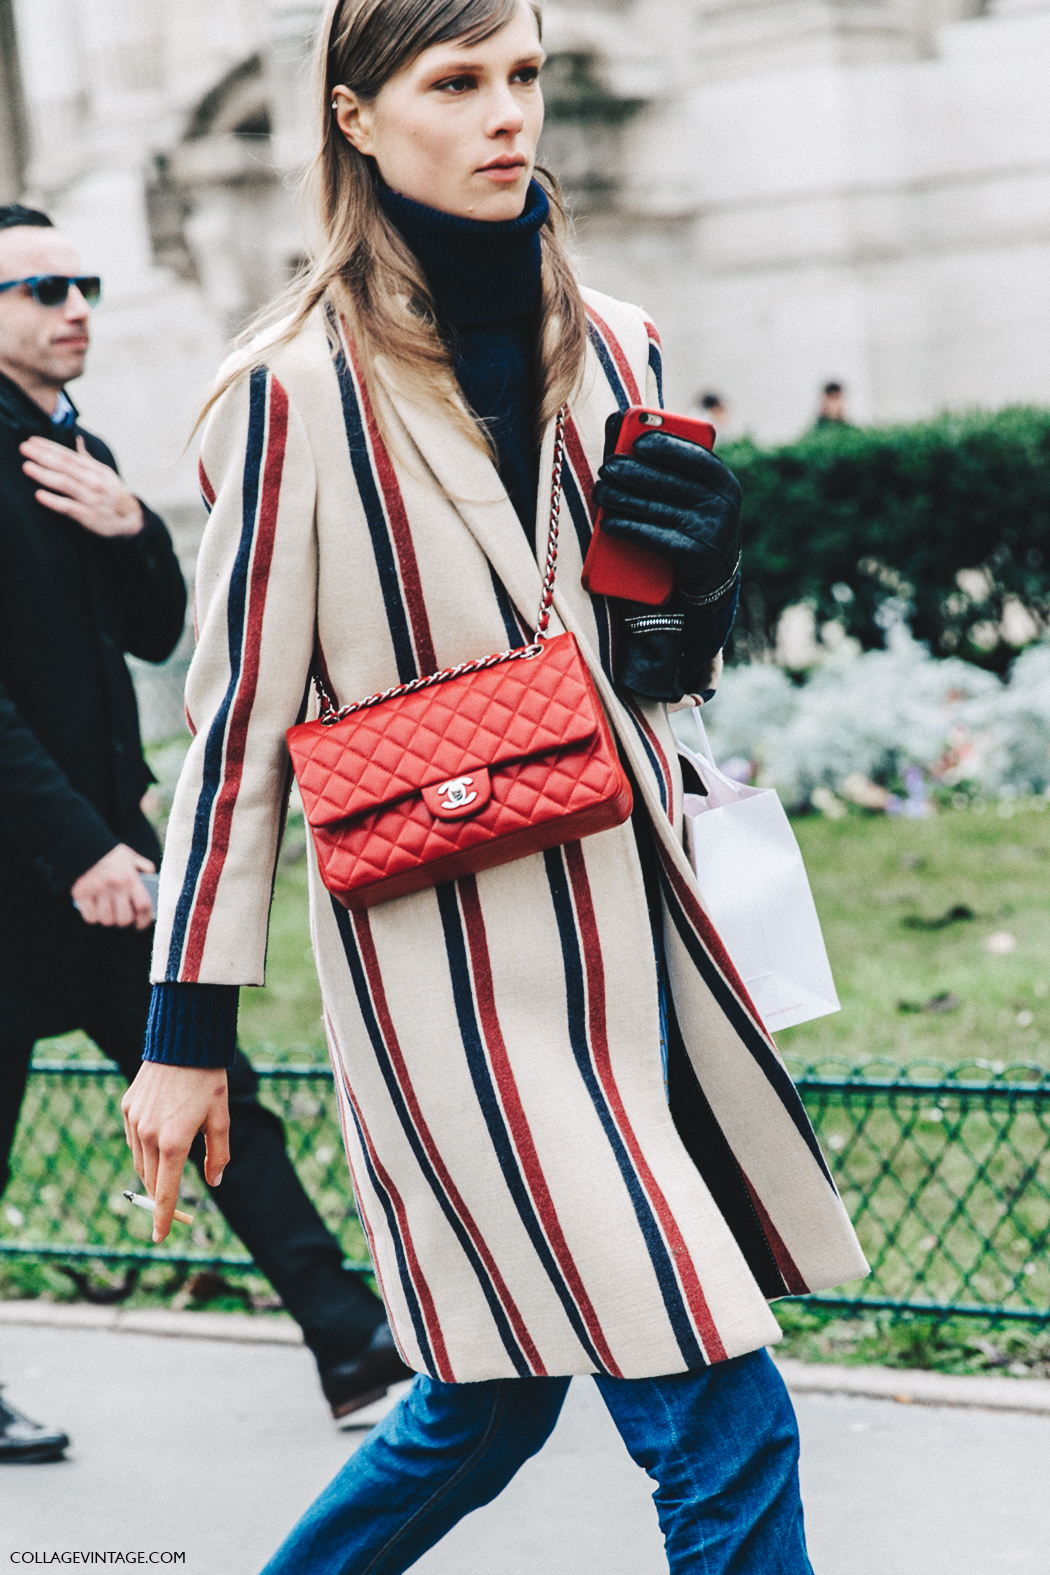 PFW-Paris_Fashion_Week_Fall_2016-Street_Style-Collage_Vintage-Caroline_Brasch-Striped_Coat-Chanel_Bag-4